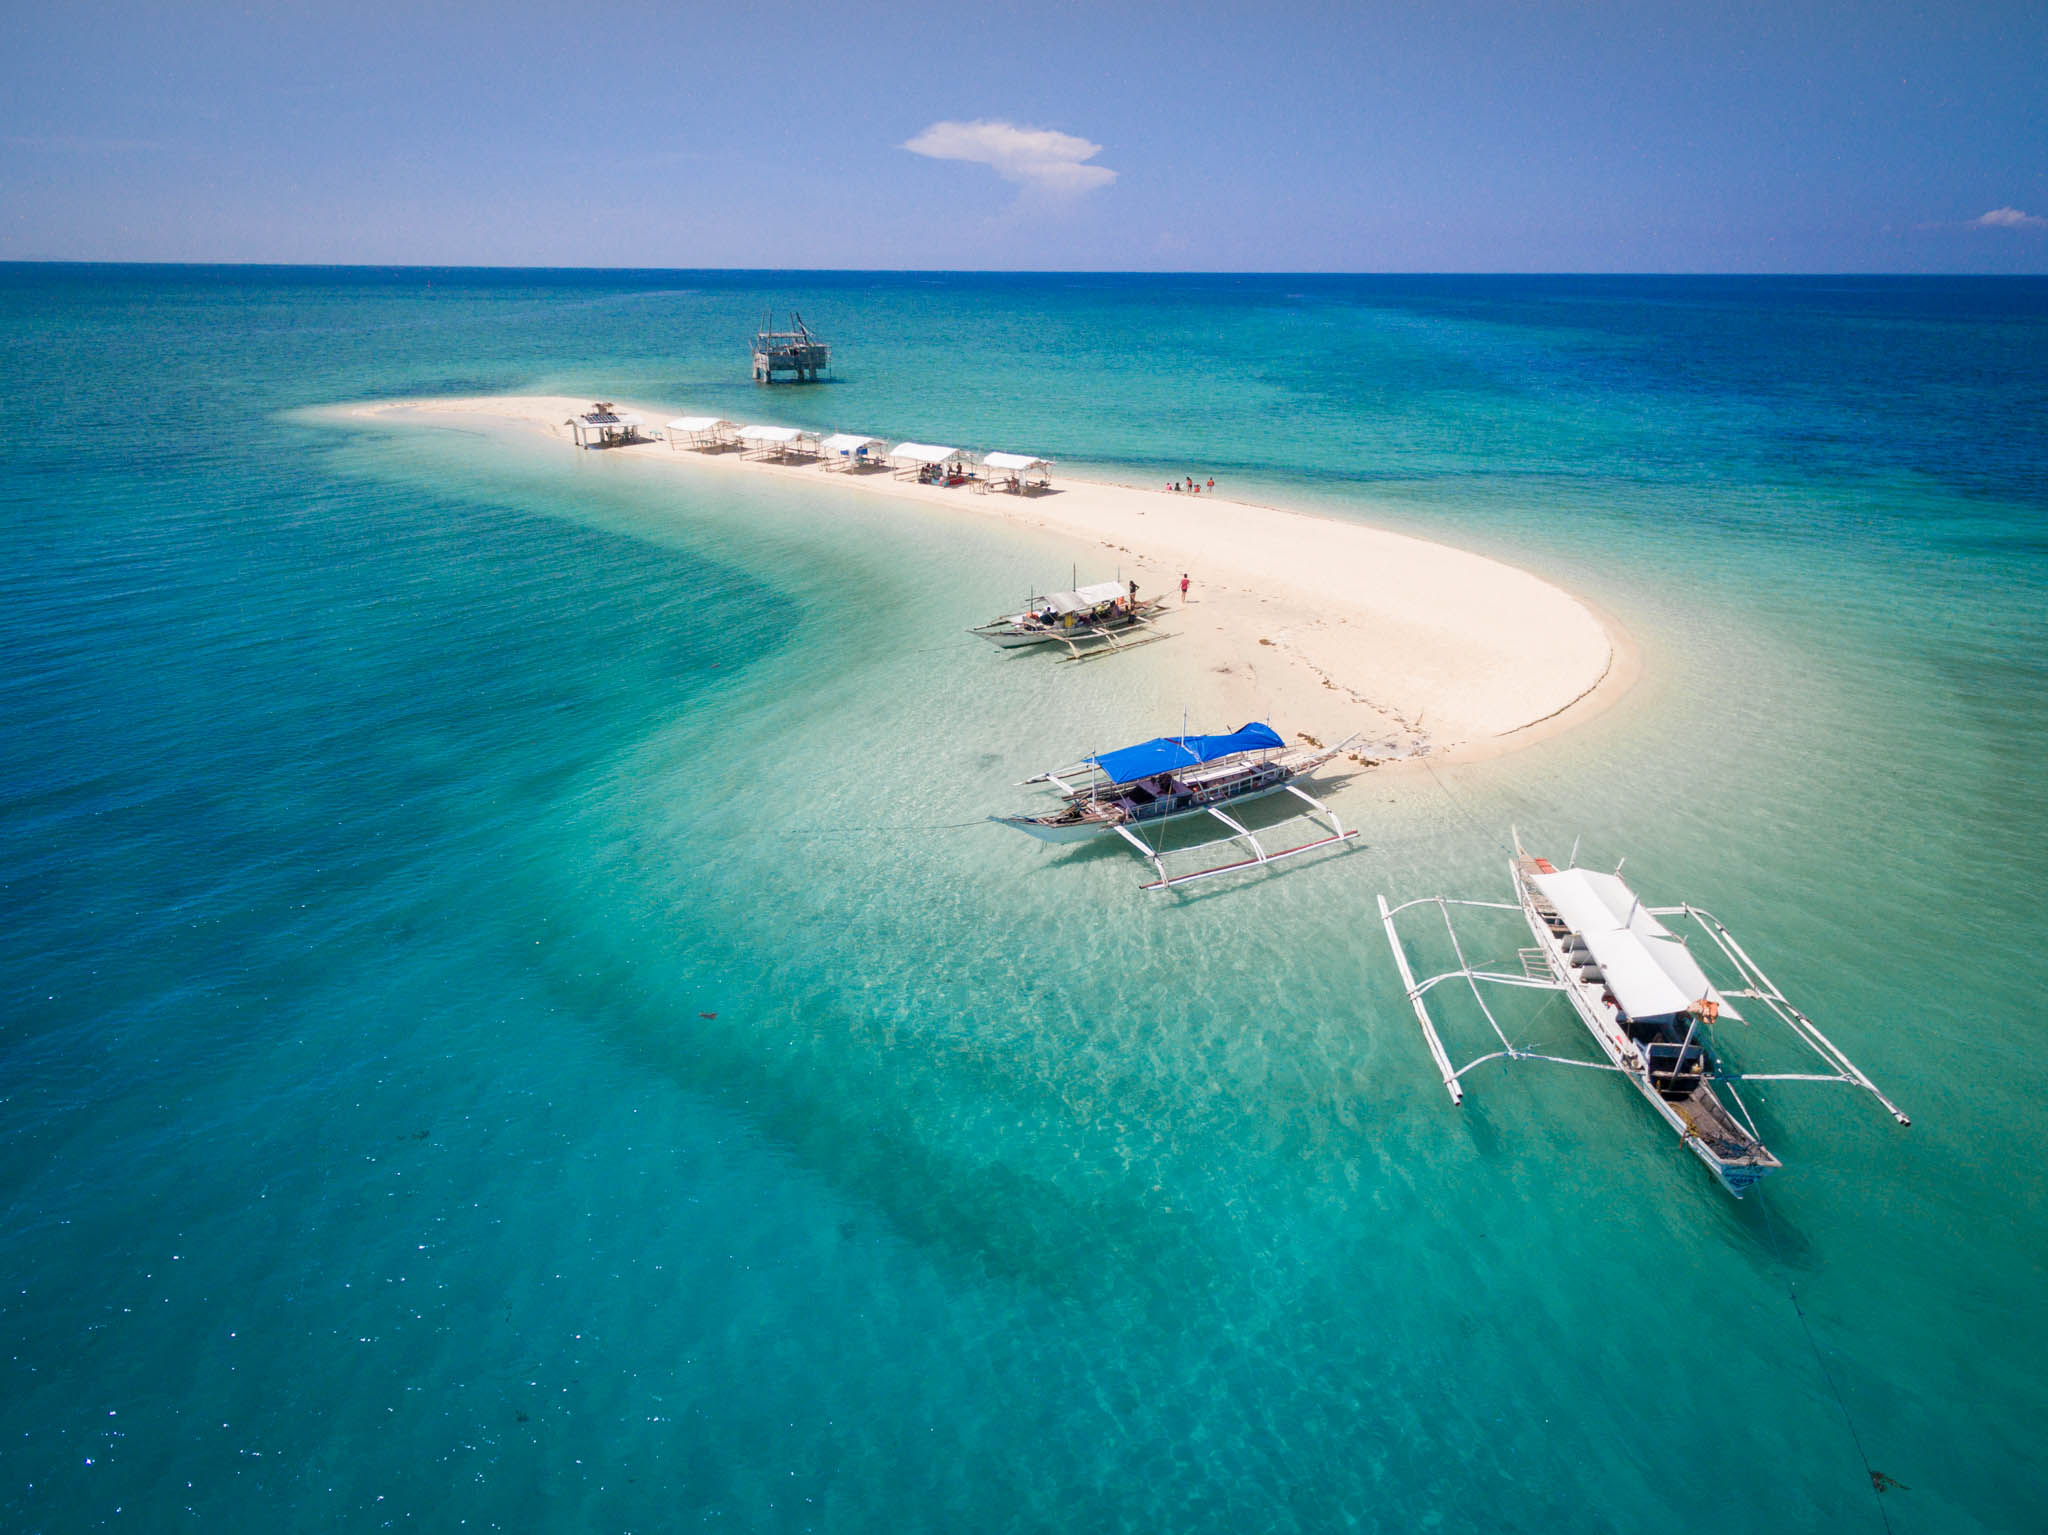 Carbin Reef, Negros